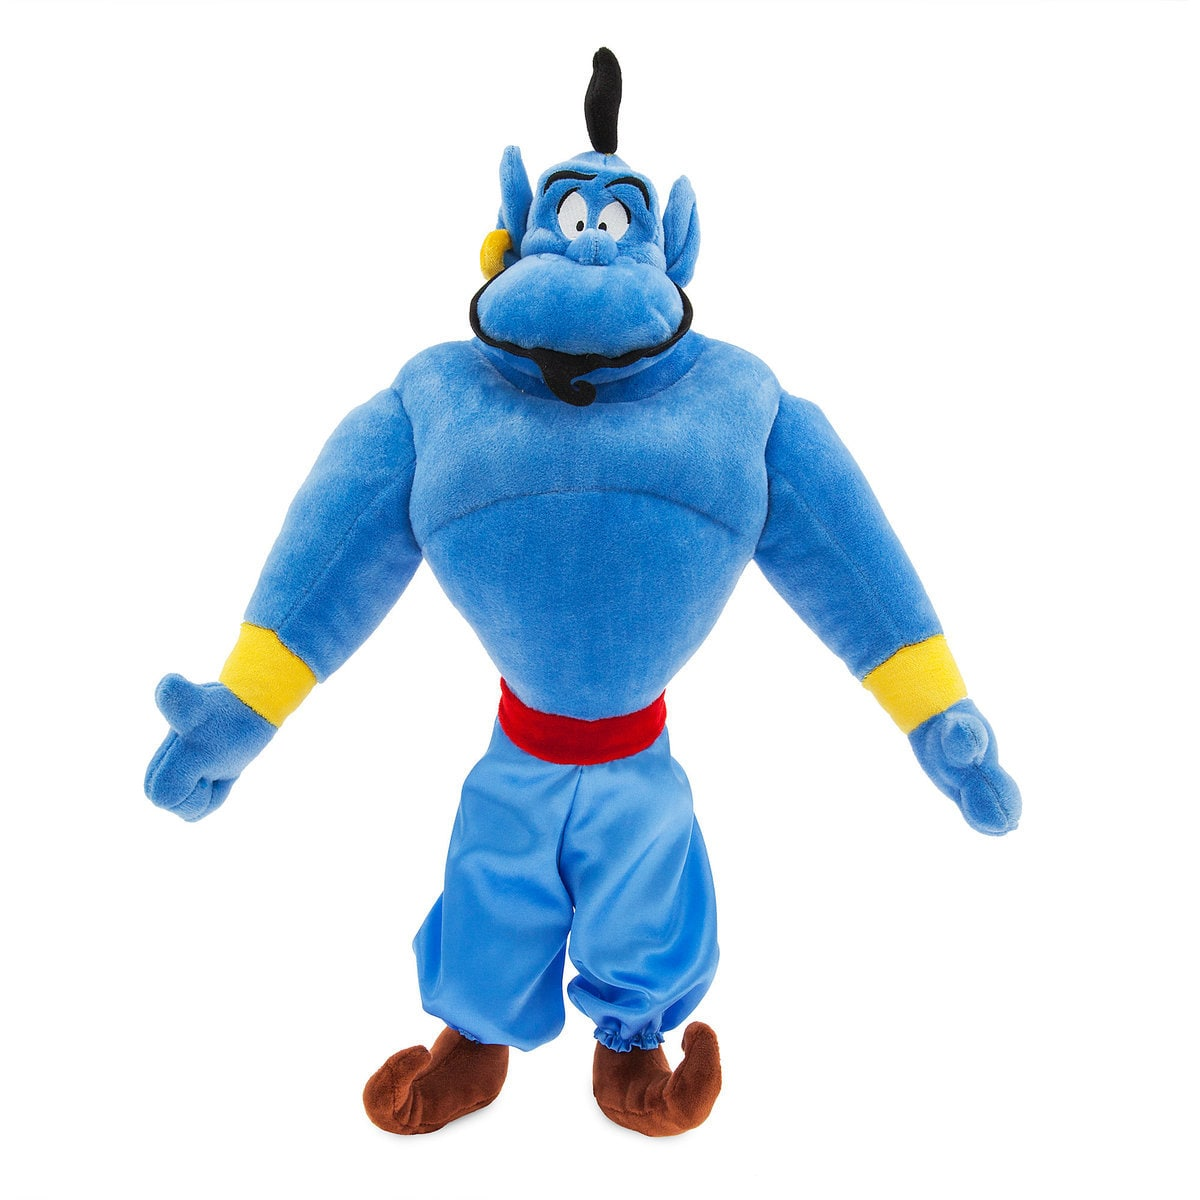 Disney Aladdin Large Plush Genie Doll Disney Store Exclusive